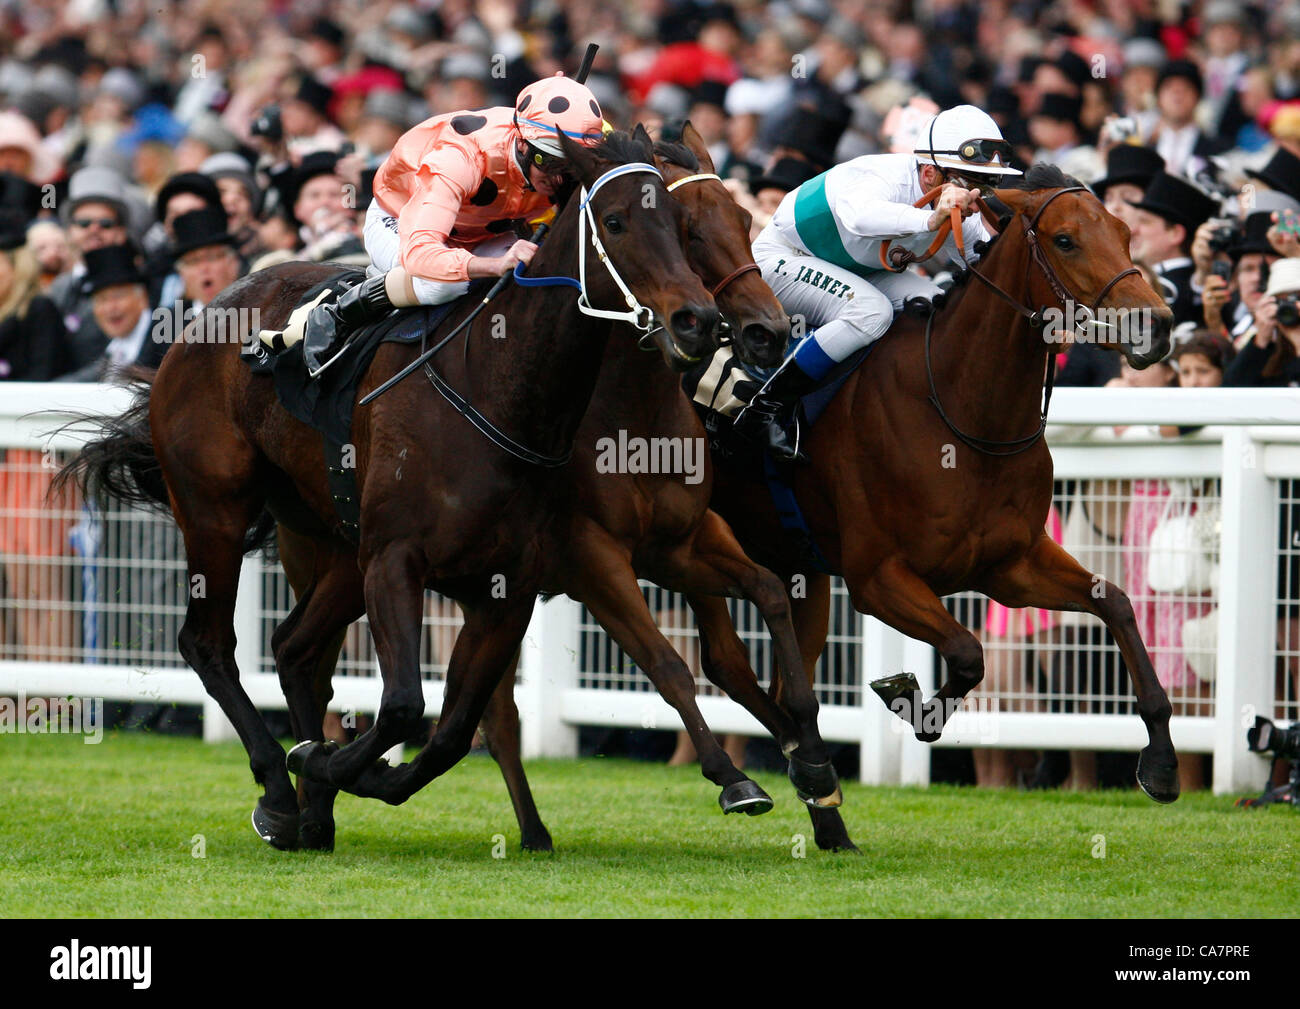 23.06.12 Ascot, Windsor, ENGLAND:  Luke Nolan on Black Caviar with Thiery Jarnet on Moonlight Cloud and Maxime Guyon - Stock Image